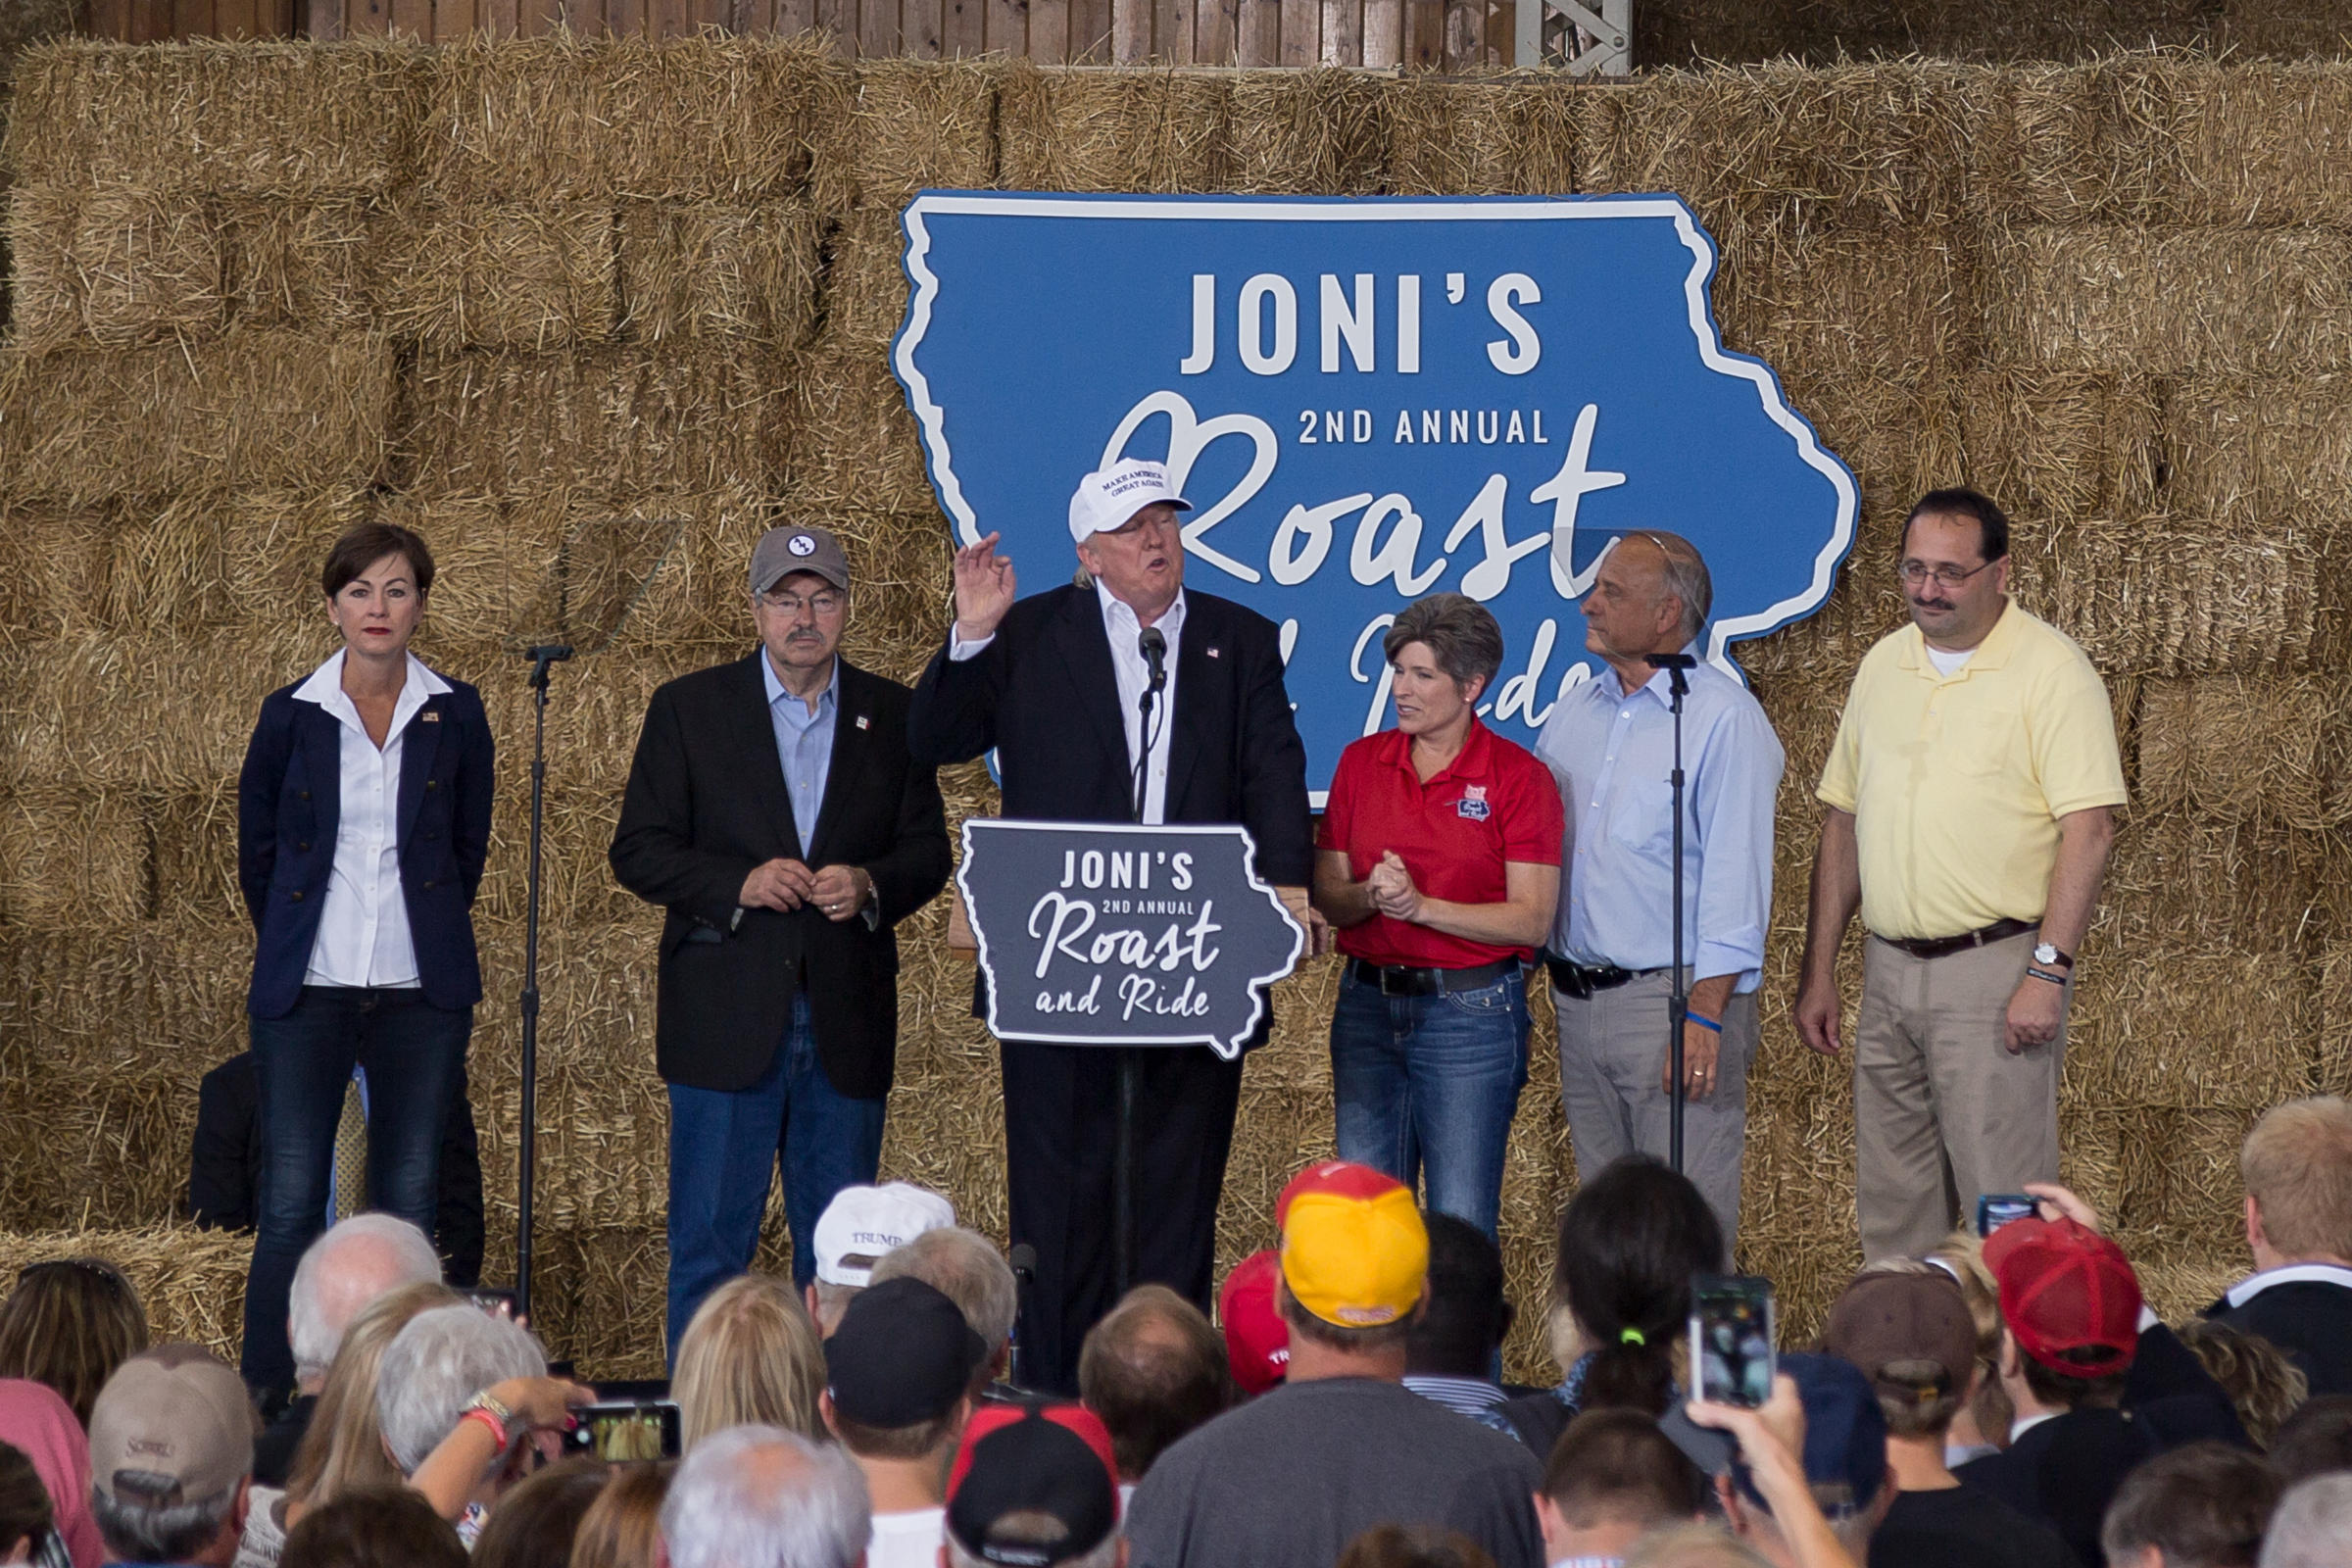 Republican presidential candidate Donald Trump appears on stage with Iowa Lieutenant Governor Kim Reynolds Governor Terry Branstad Sen. Joni Ernst Congressman Steve King and Iowa GOP Chairman Jeff Kaufmann